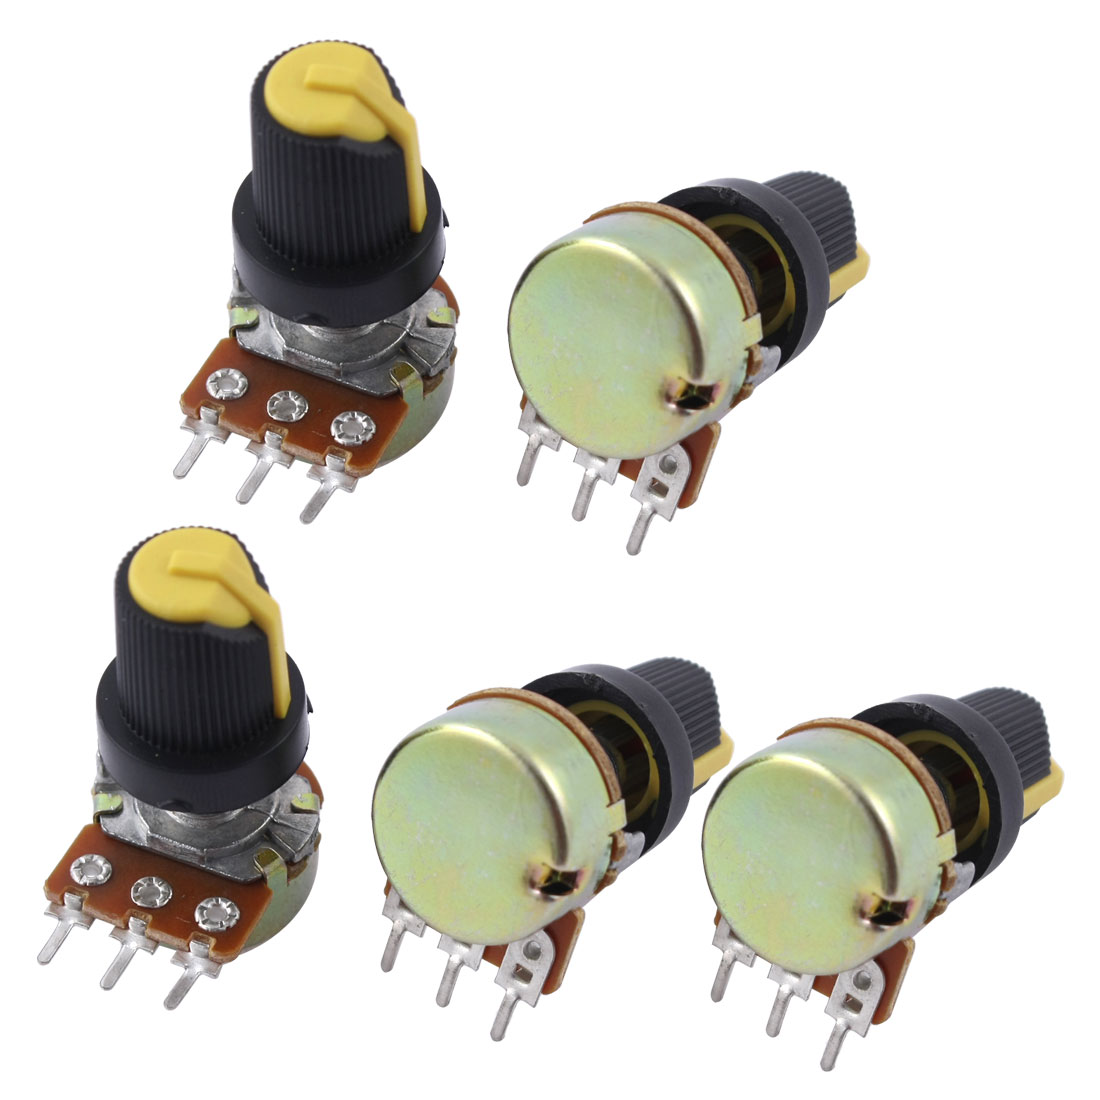 5 Pcs B250K 250K Ohm 3 Terminals Rotary Audio B Type Potentiometer Pot